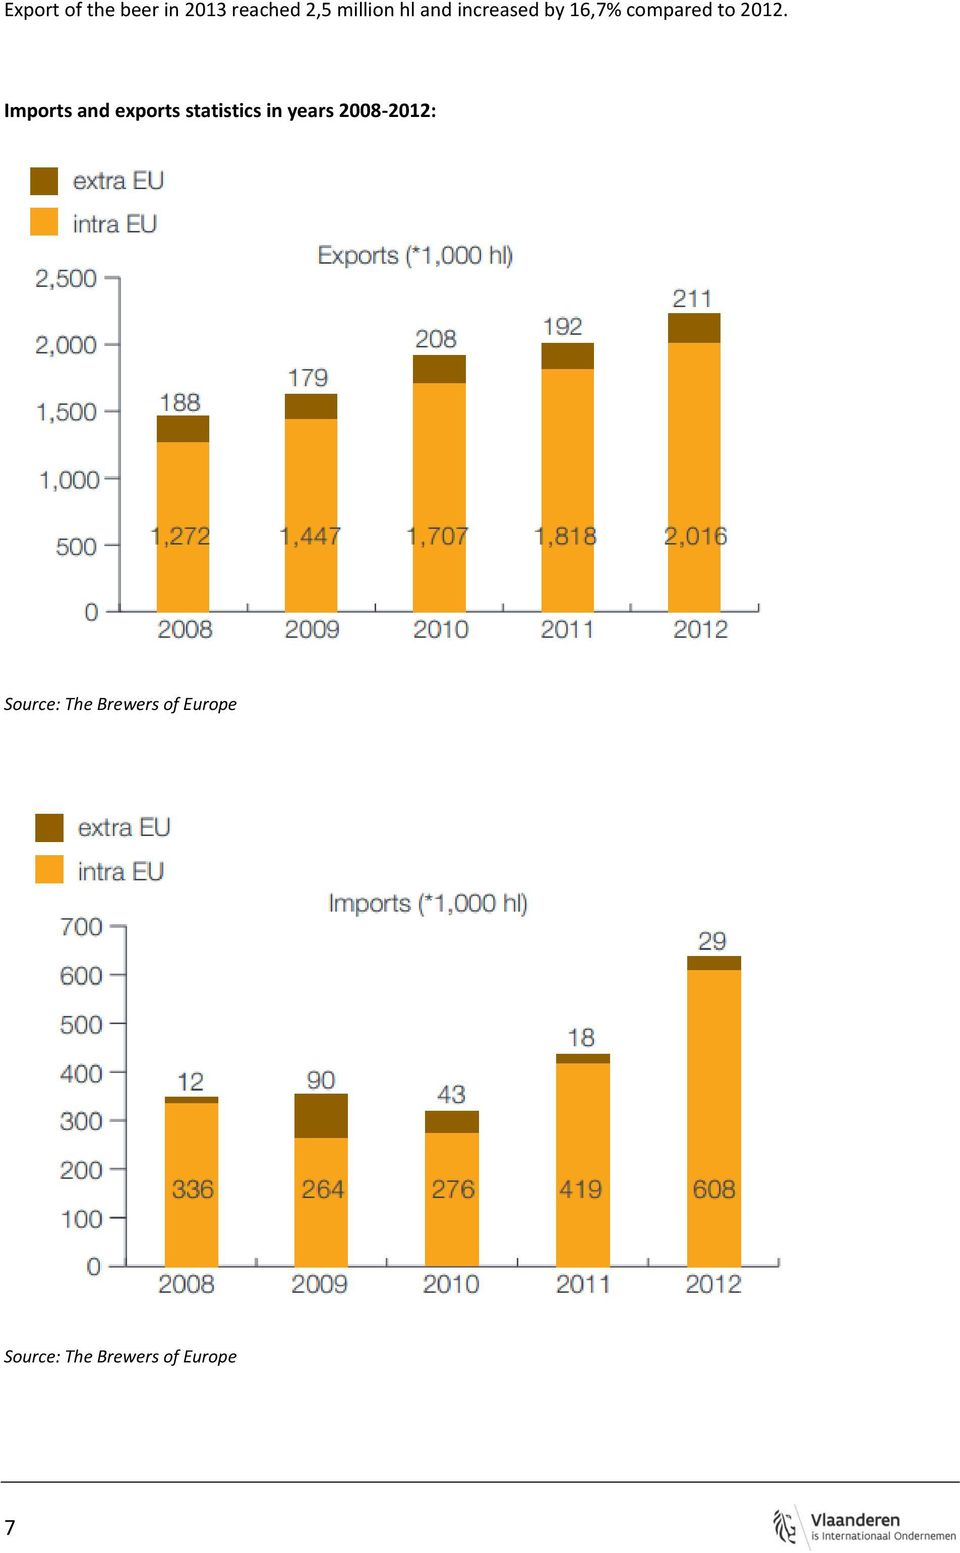 Imports and exports statistics in years 2008-2012: